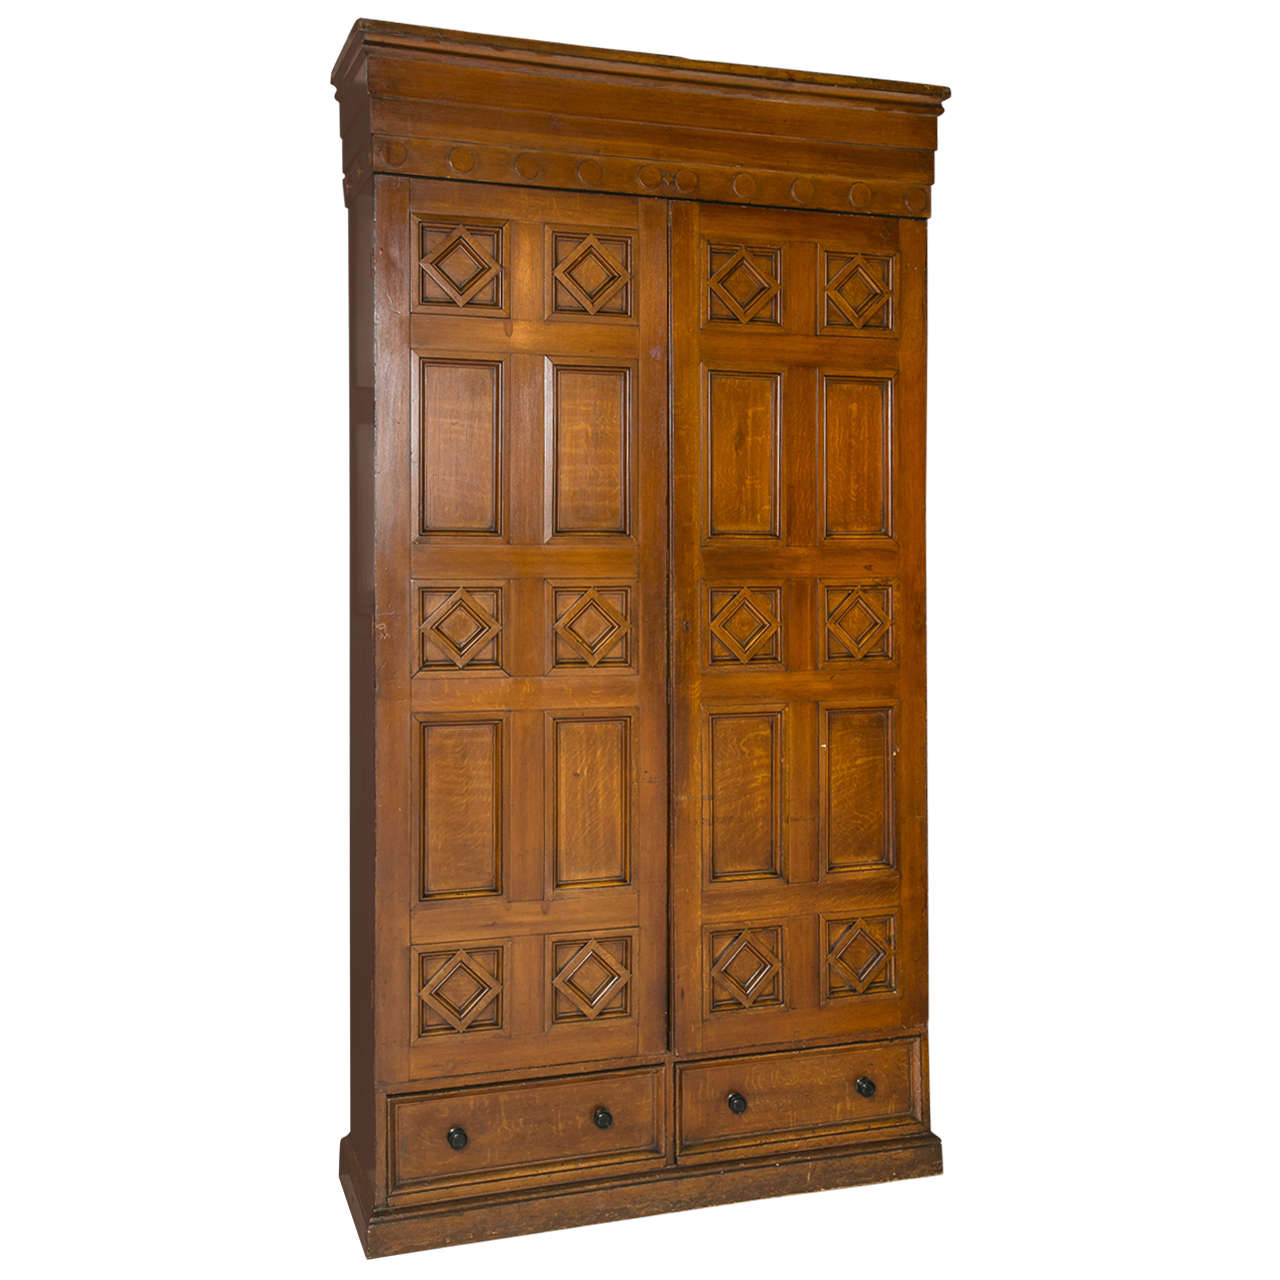 Large Wood Grain Painted Pine Armoire At 1stdibs. Full resolution  img, nominally Width 1280 Height 1280 pixels, img with #784417.